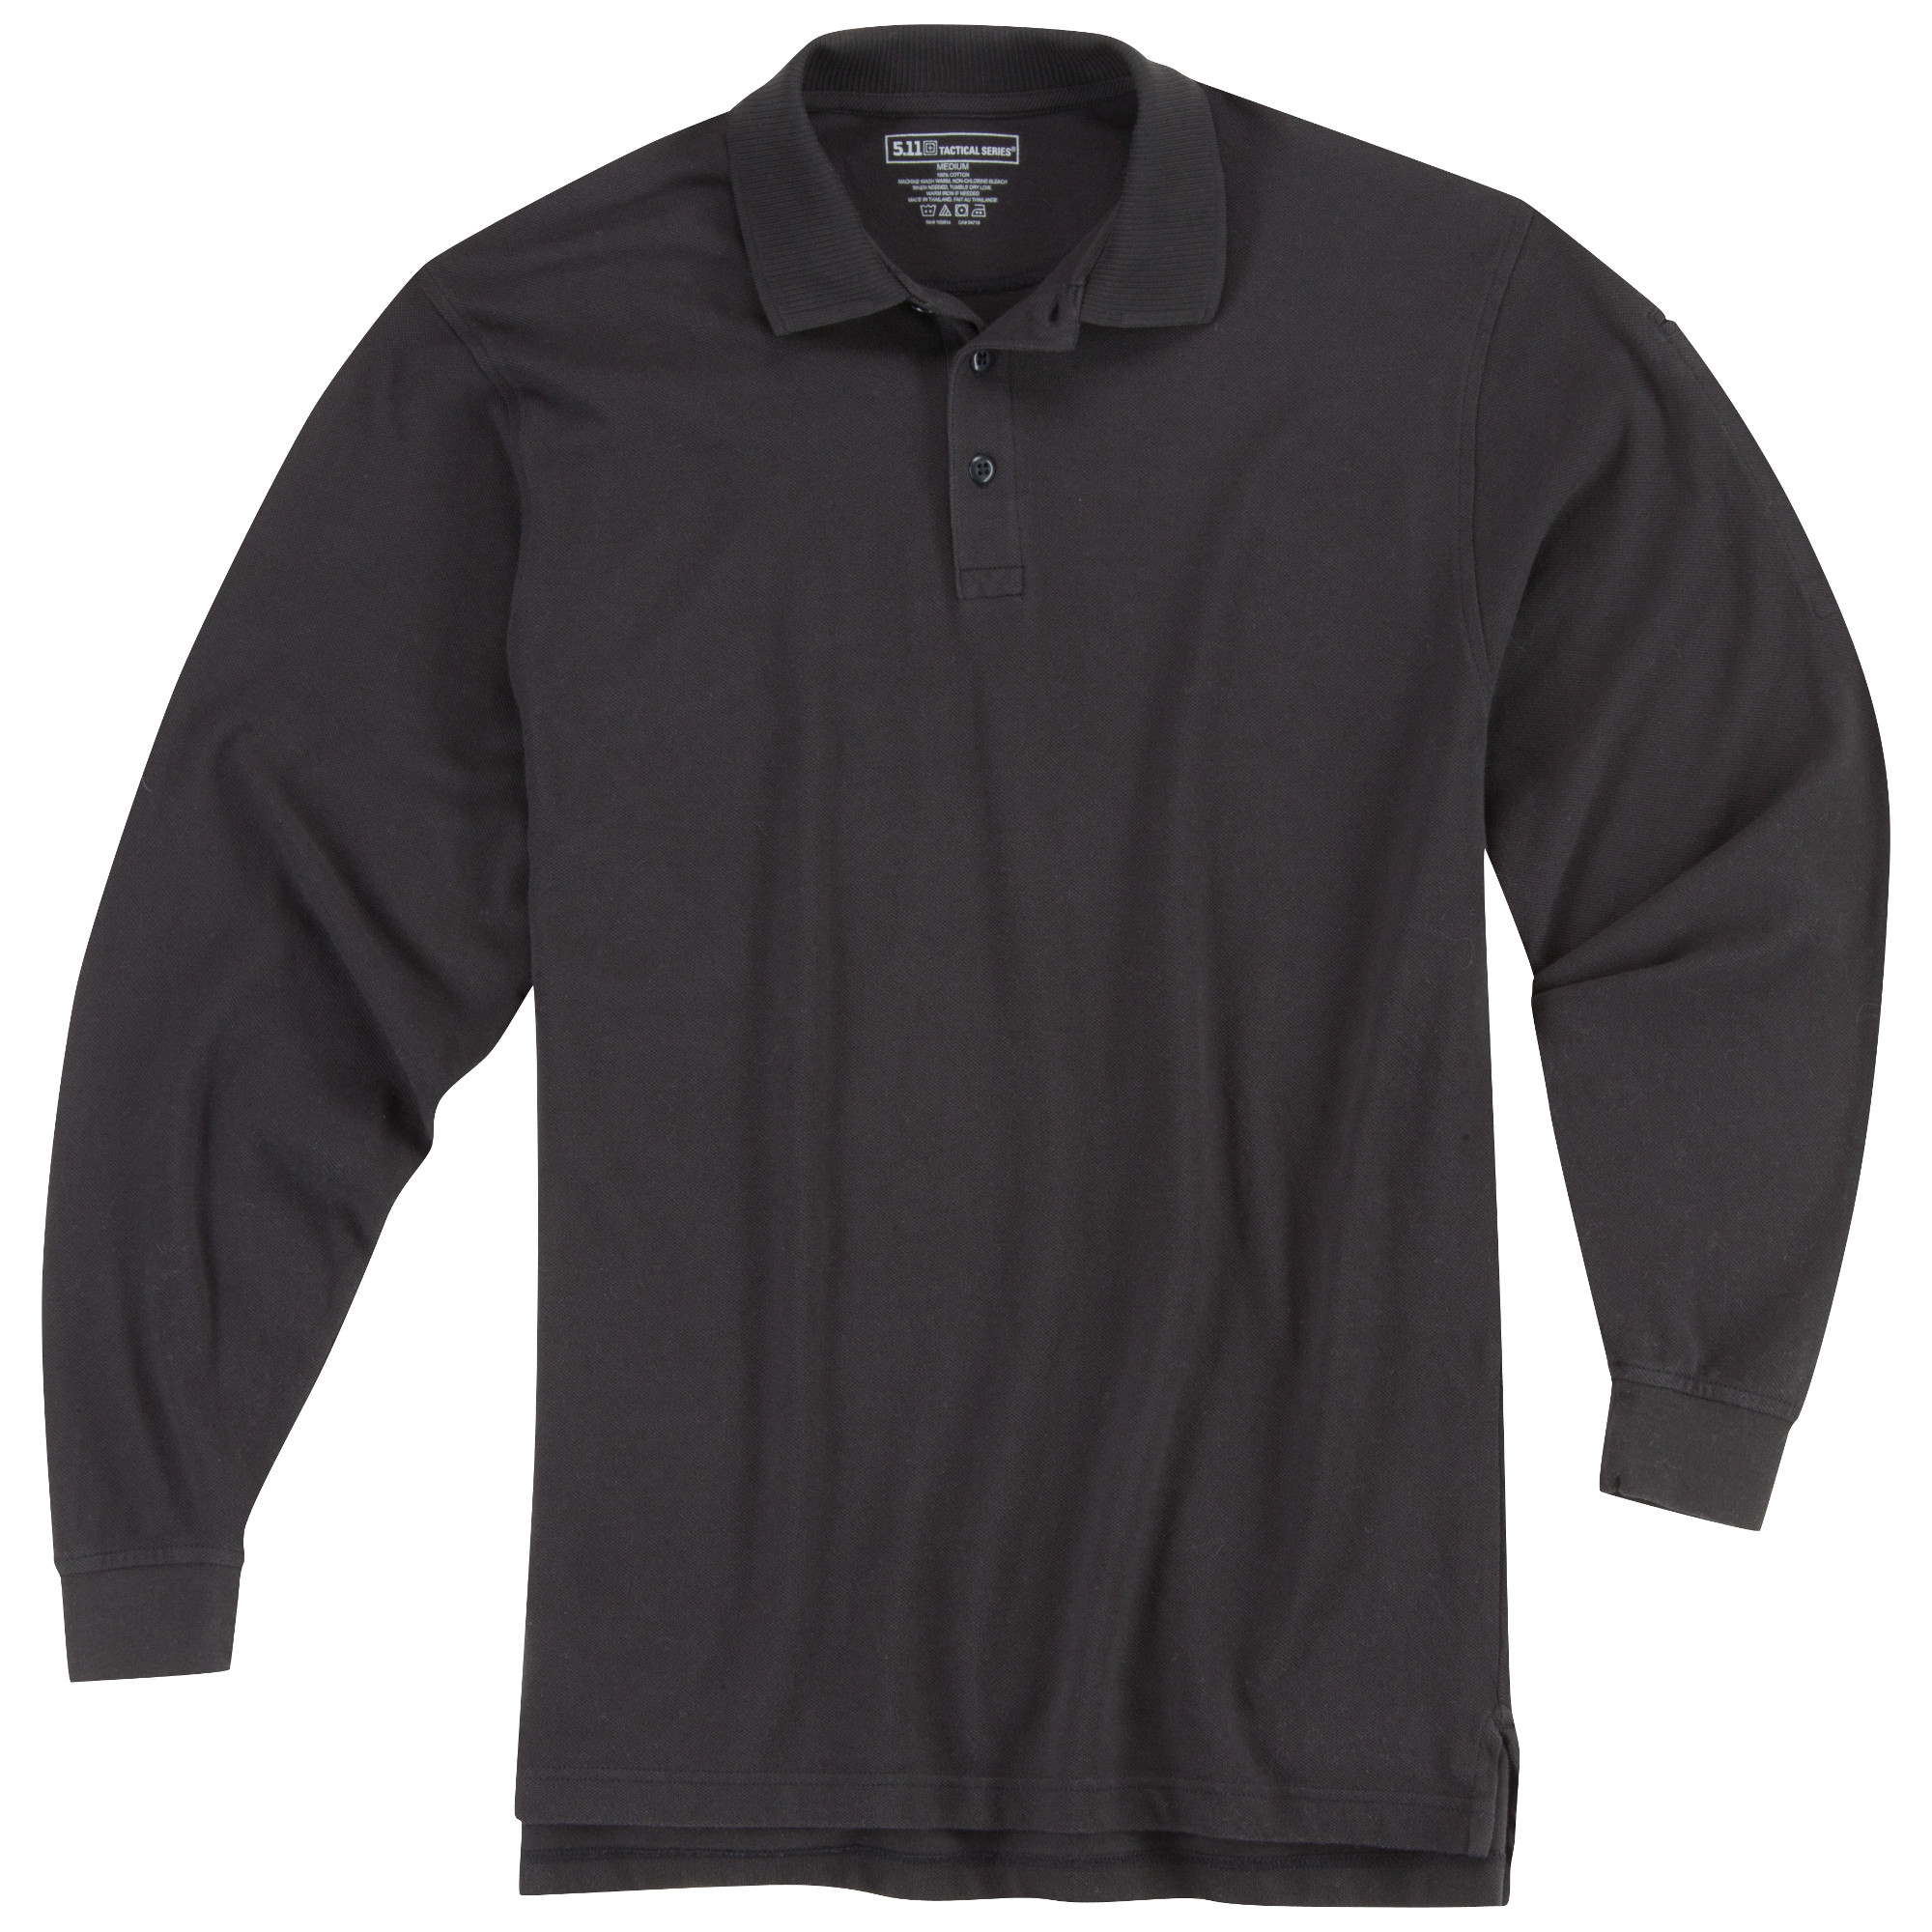 5.11 Long Sleeve Cotton Professional Polo 42056